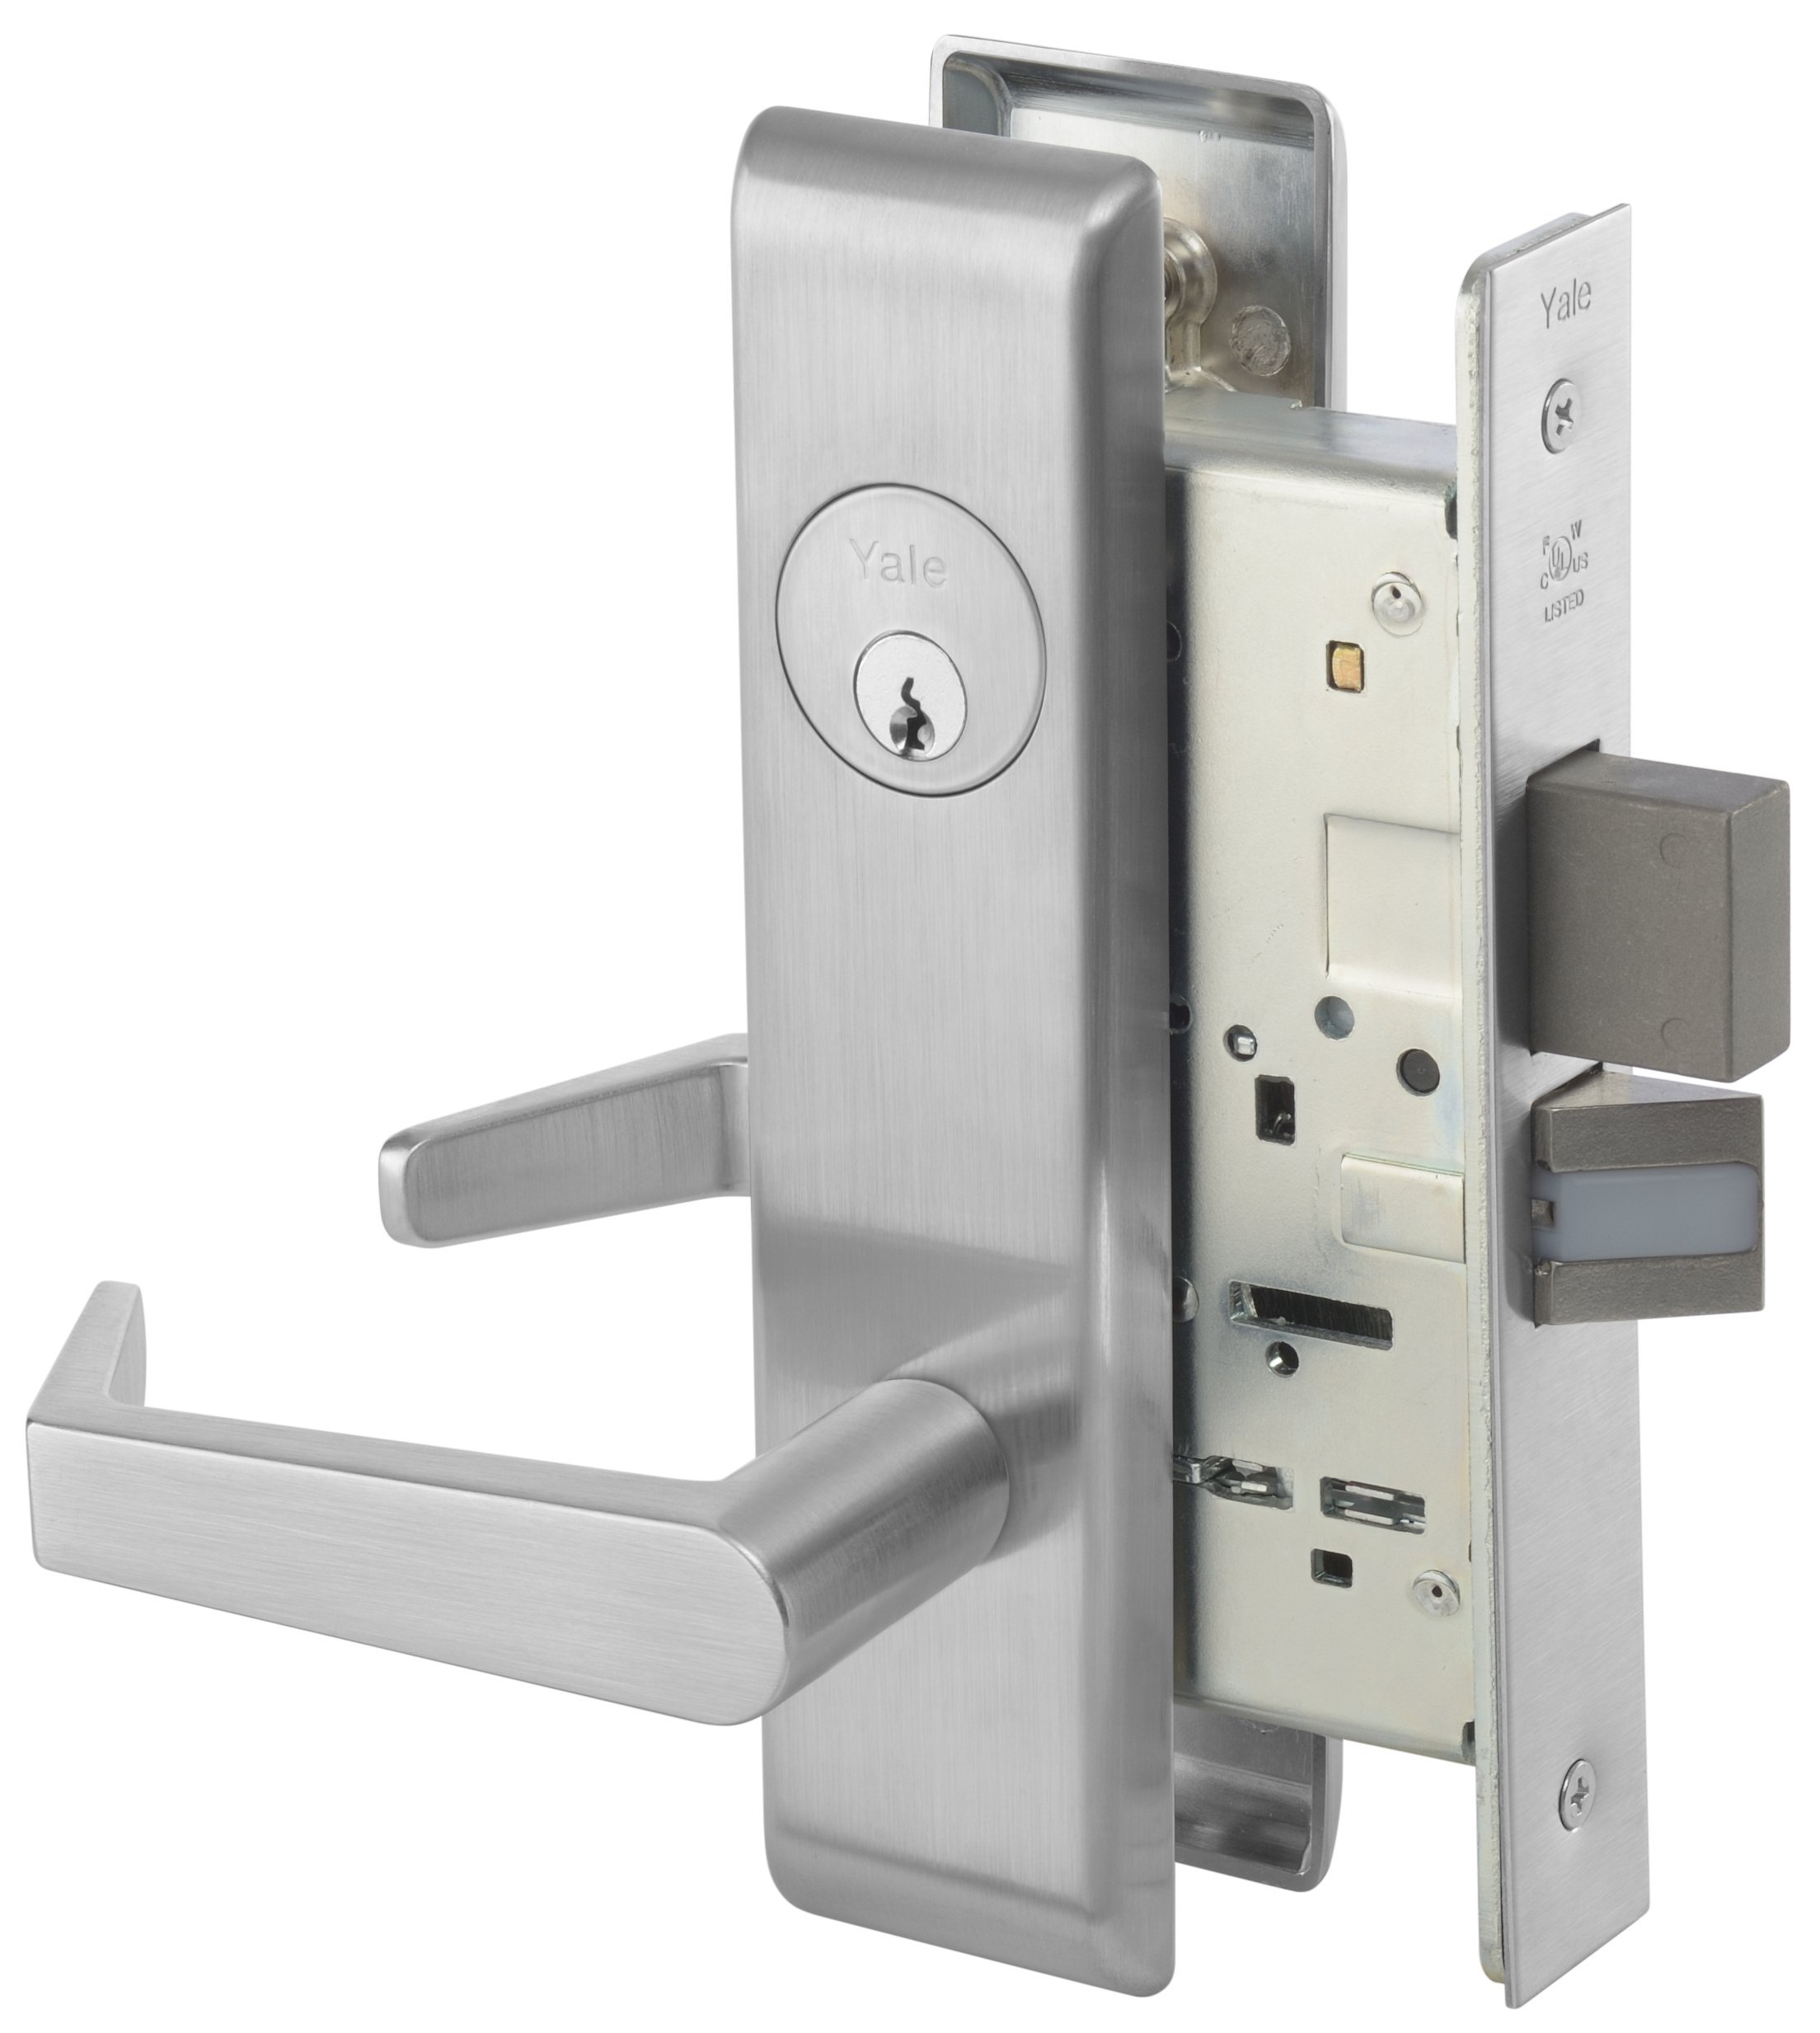 Yale 8822FL RH AUCN 626 LESS CY 8800 Mortise Lockset, Grade 1, Escutcheon Plate, Dormitory with Deadbolt, Cylinder Not Included, 626 Satin Chrome Finish